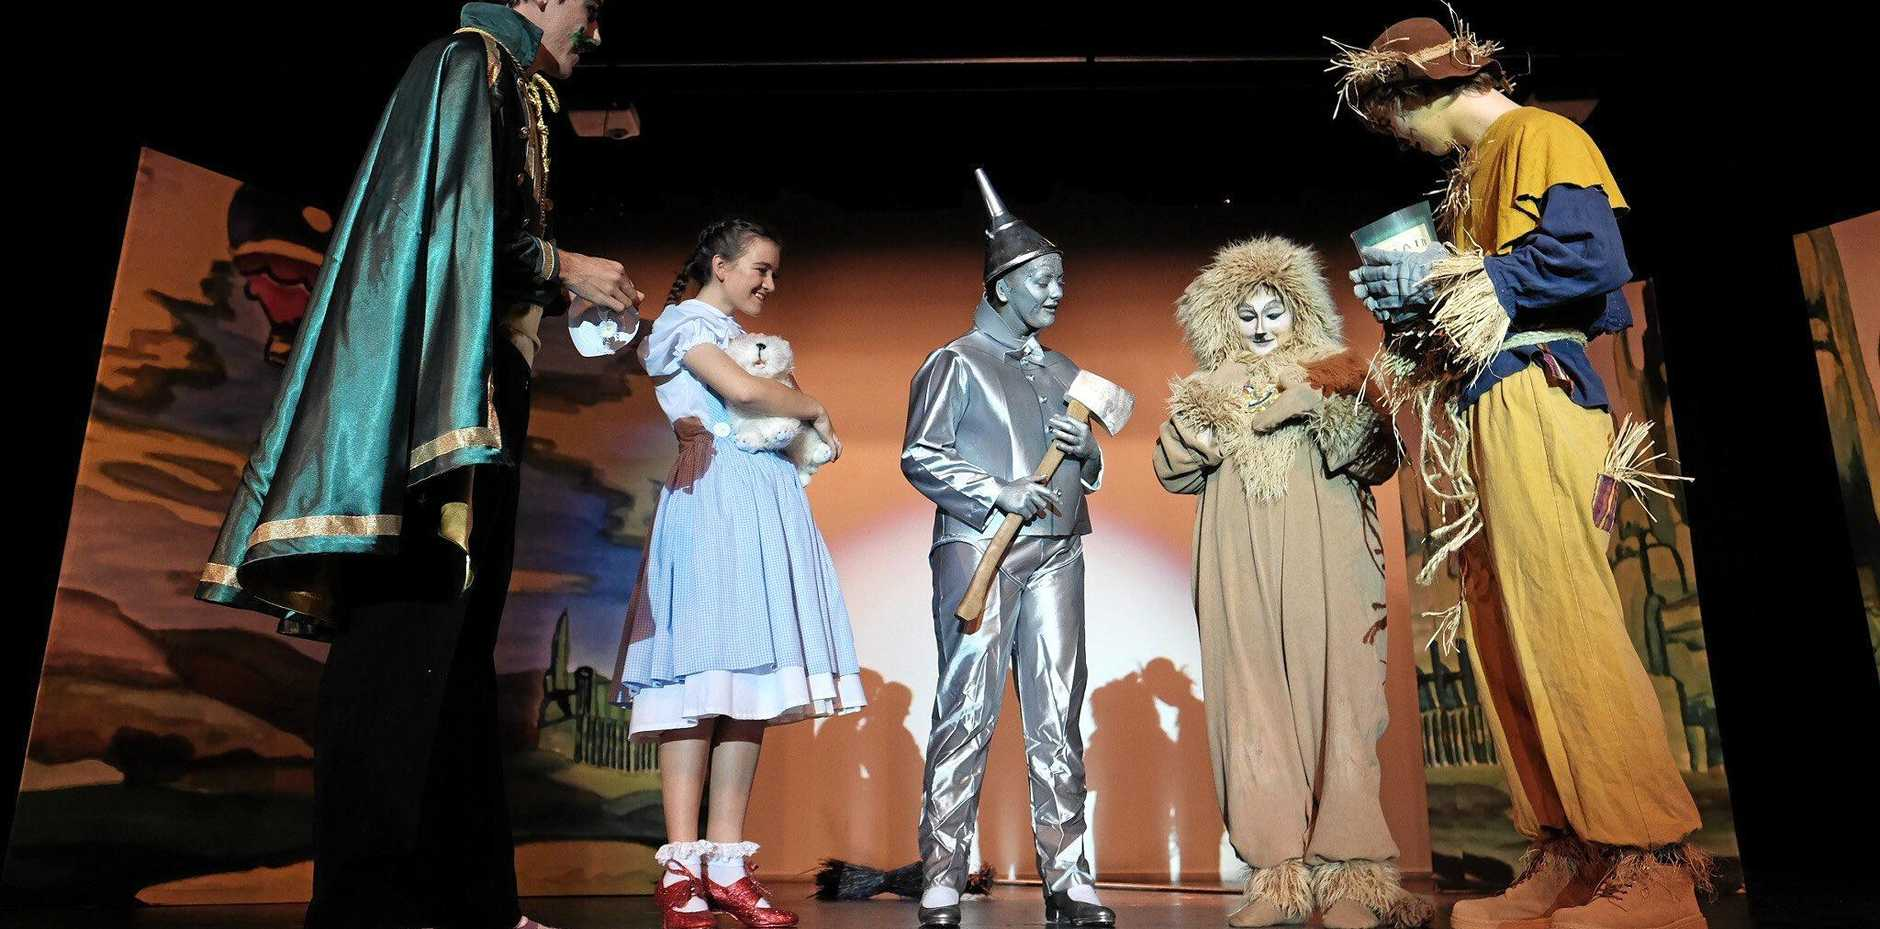 ROAD TO OZ: Marist students Lindsay Chapman (Wizard of Oz), Hannah Herwin (Dorothy), Abbie Hopkinson (Tinman), Hannah Ryan (Lion), Elijah Horsfall (Scarecrow) rehearse the musical. See page 12 for more photos.